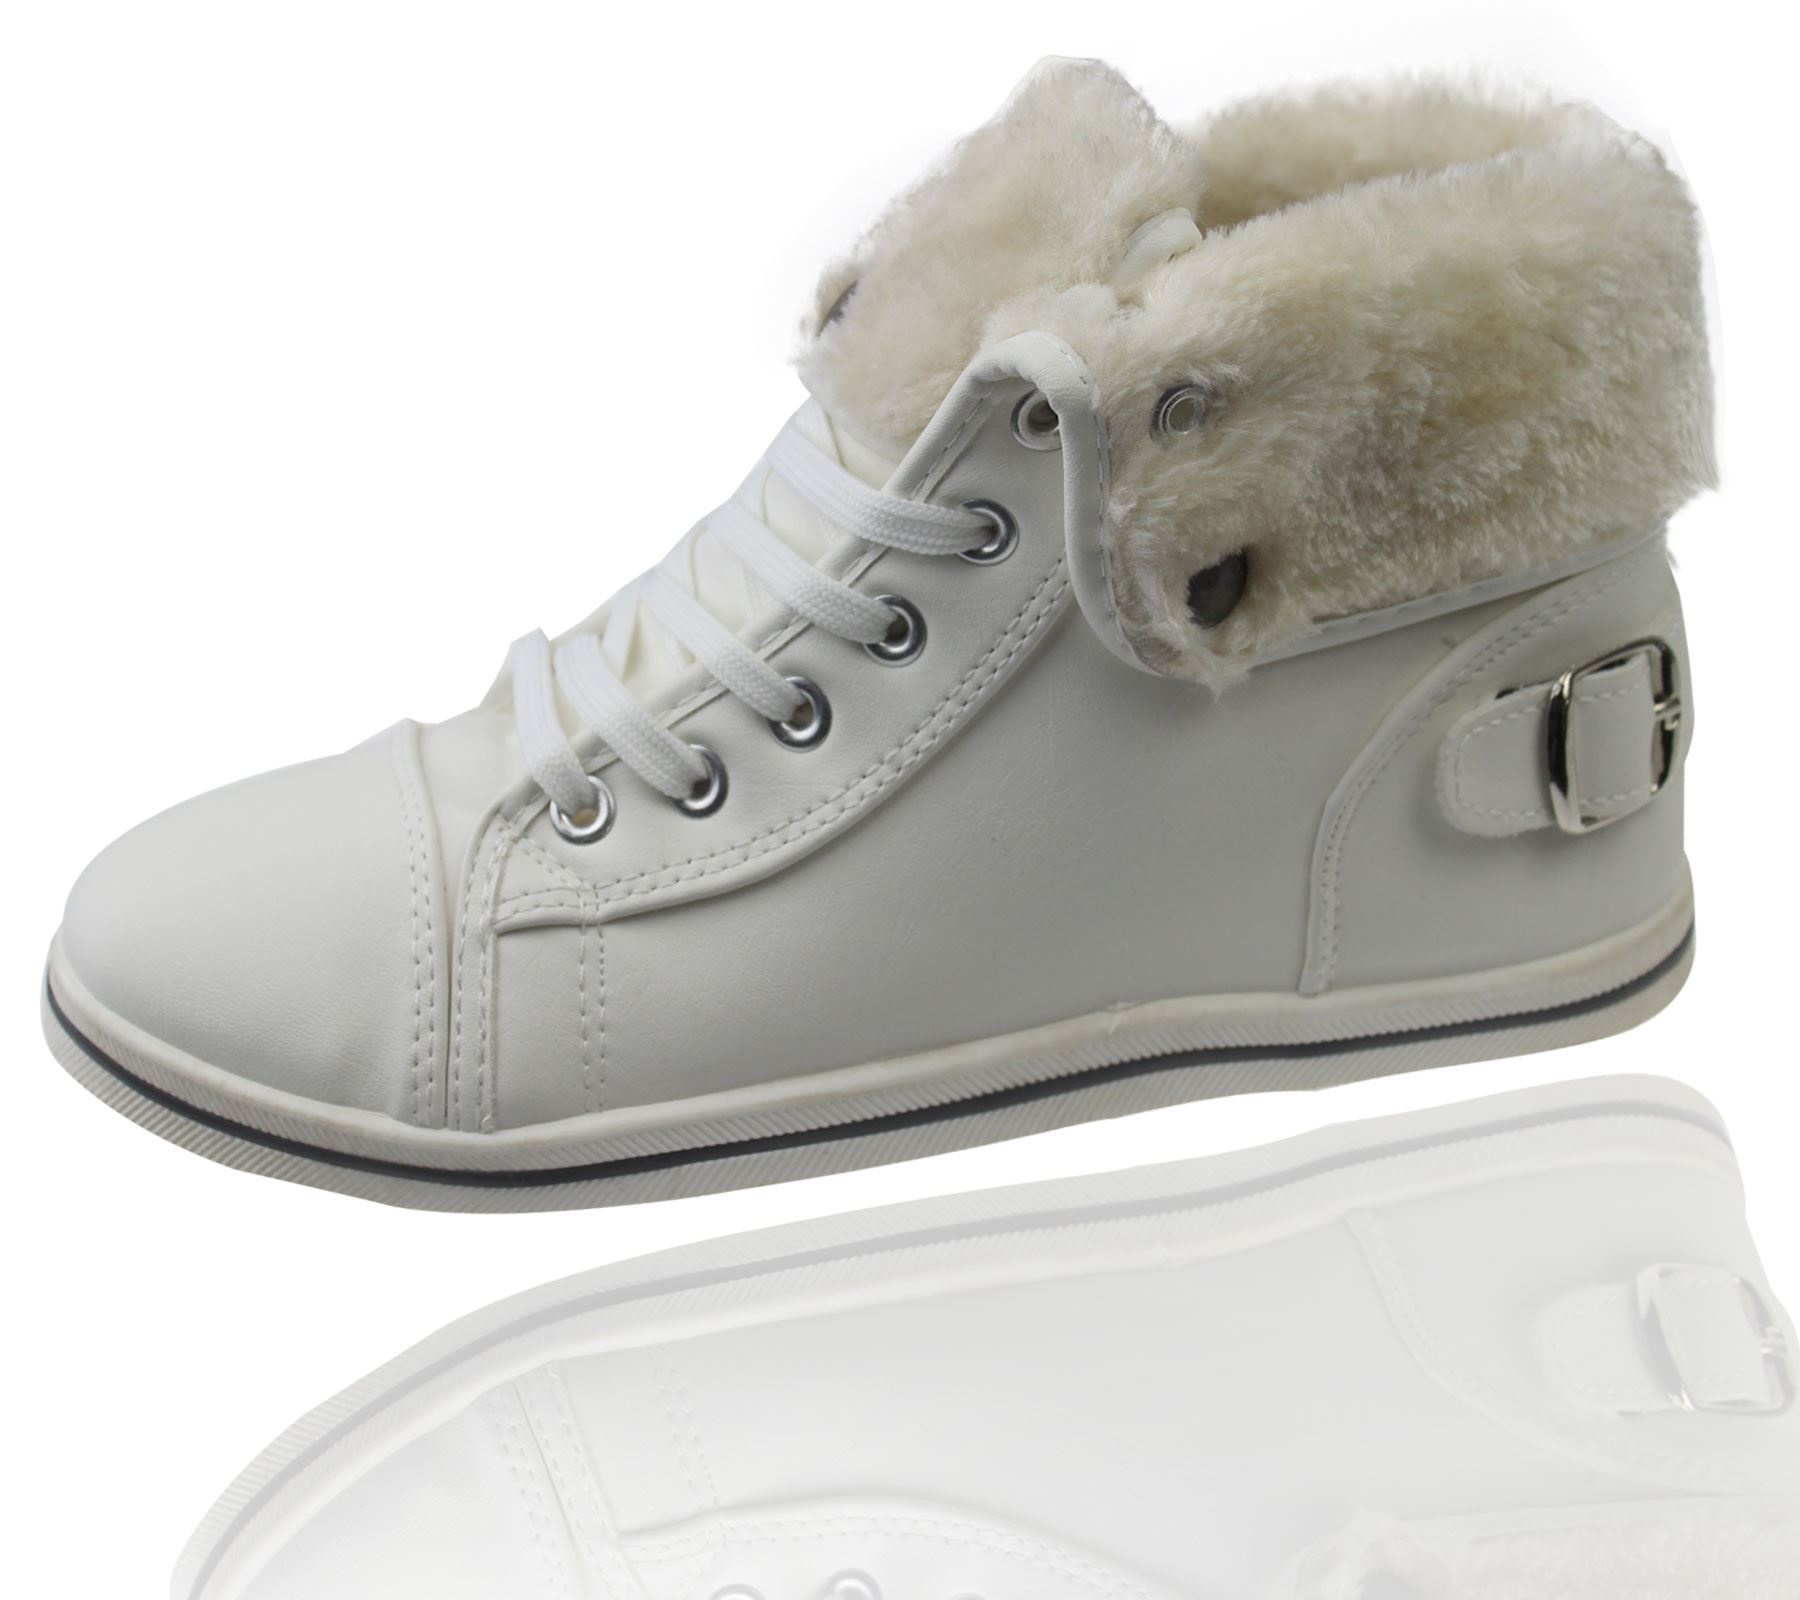 Girls-Boots-Womens-Warm-Lined-High-Top-Ankle-Trainer-Ladies-Winter-Shoes-Size miniatura 69